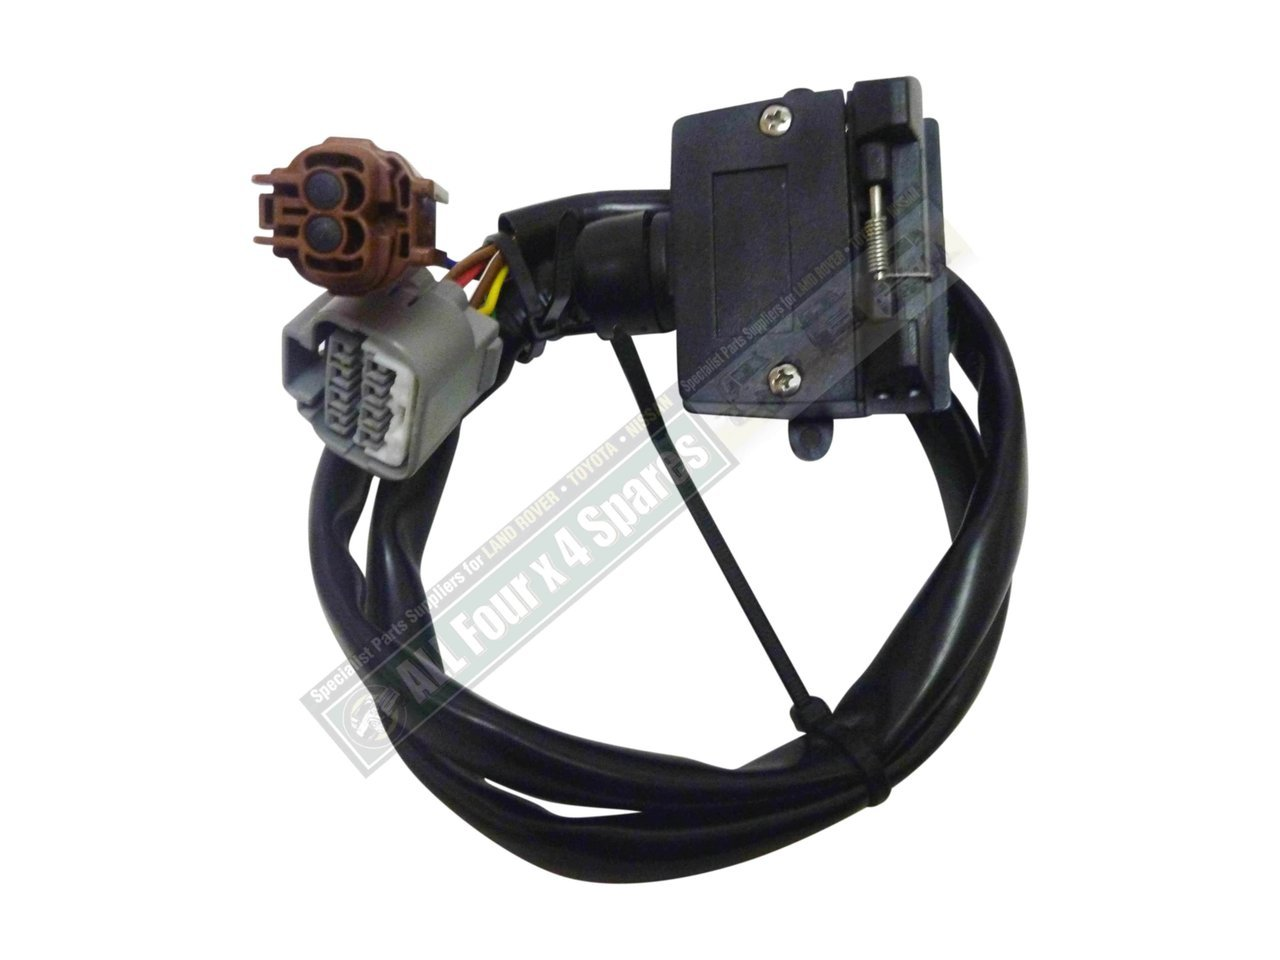 Towbar Wiring Harness Manual Guide Diagram Isuzu Milford D Max Mu X 2012 On Tow Bar Jeep Vw